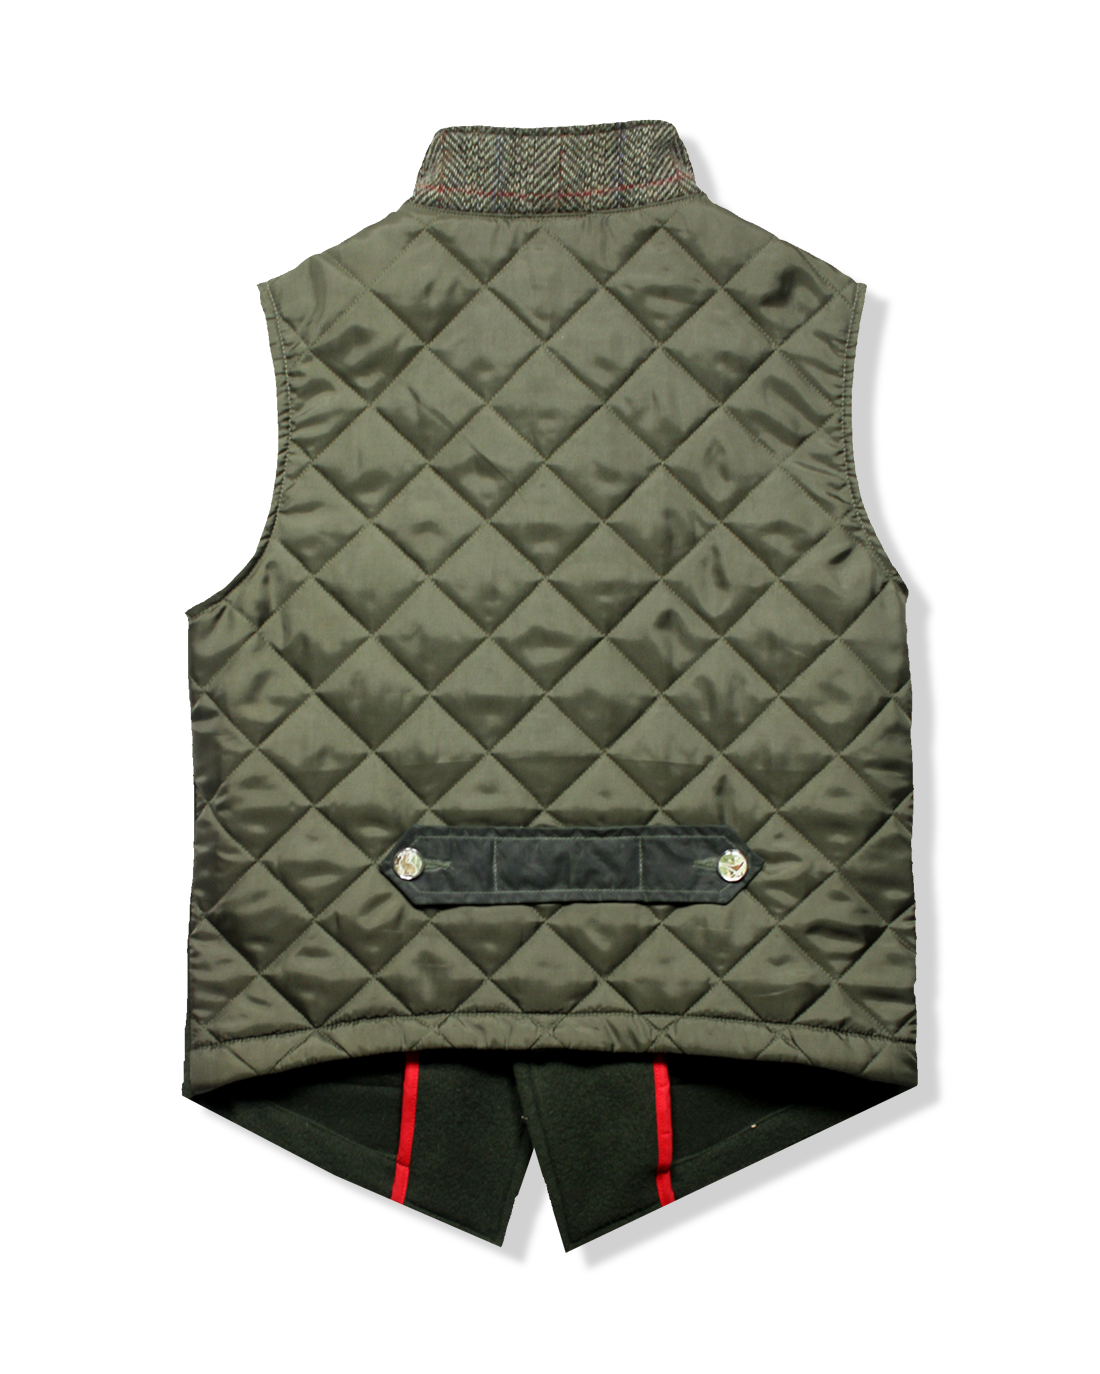 The ROTW Body Warmer